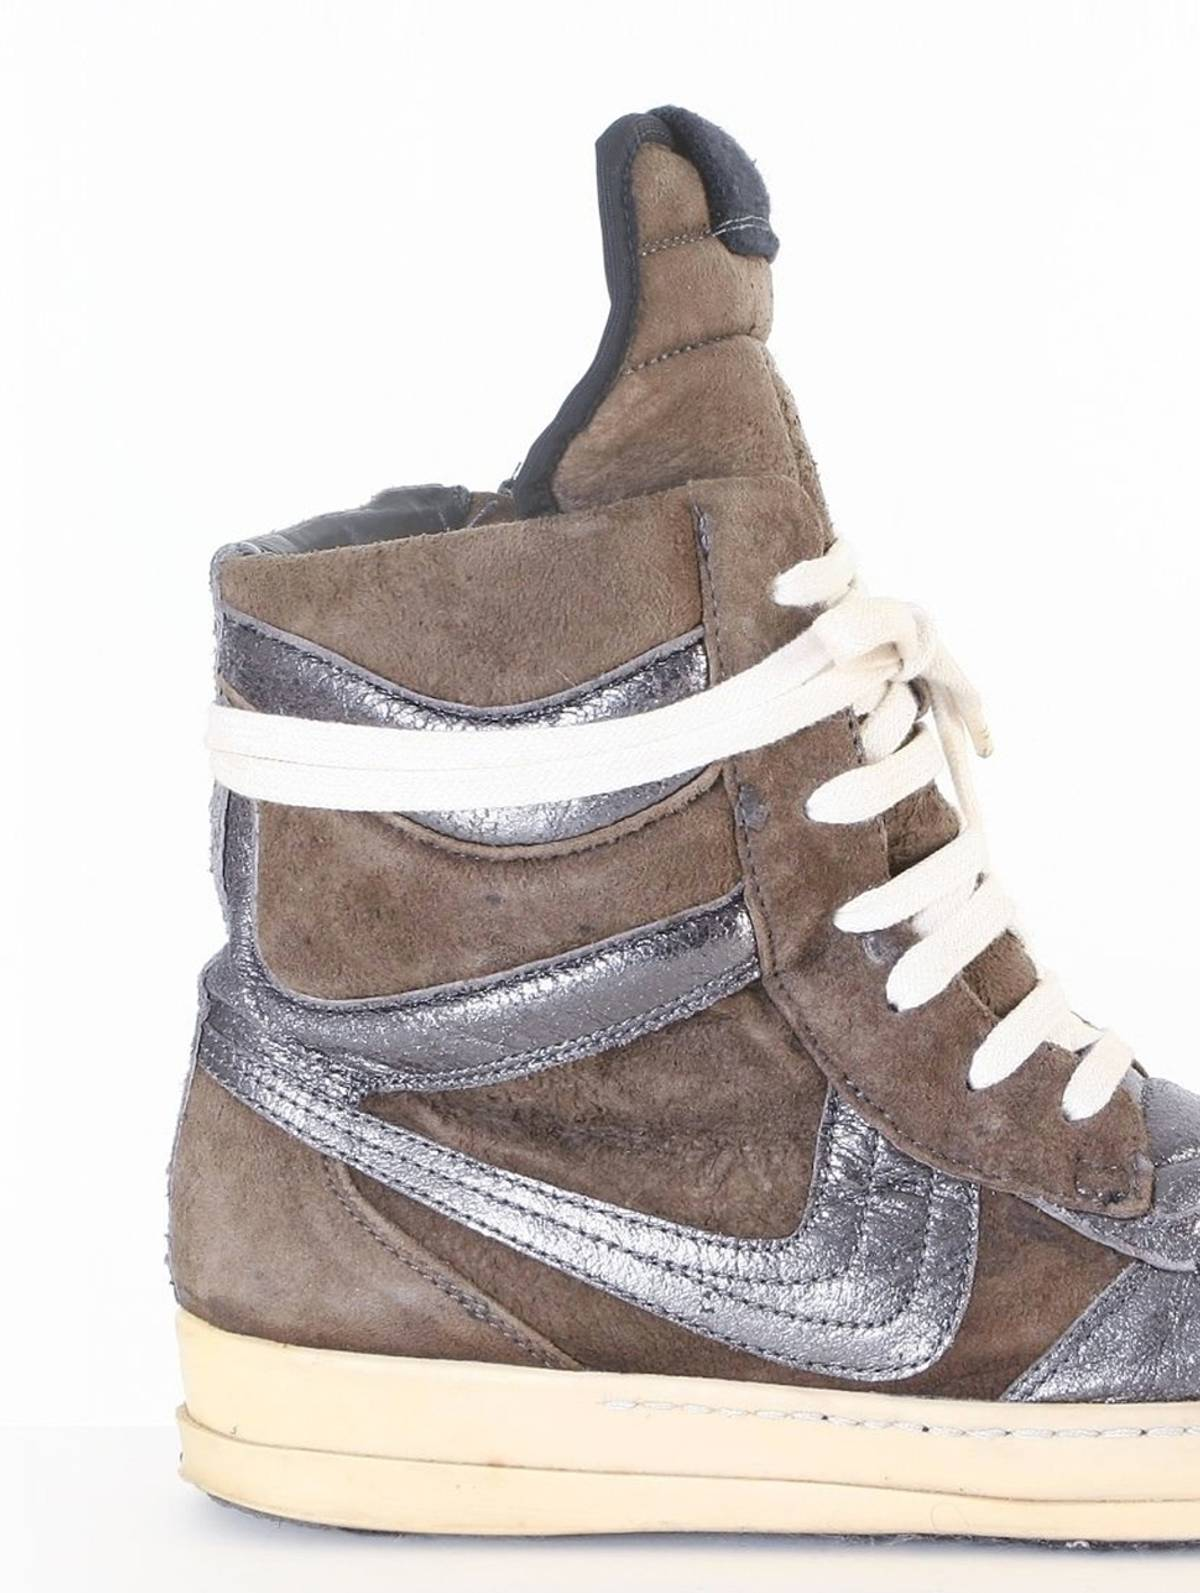 e5daa847a89171 Rick Owens rare RICK OWENS OG Dunks brown suede leather high top sneaker  shoes EU38 US8 UK5 Size 6 - Hi-Top Sneakers for Sale - Grailed